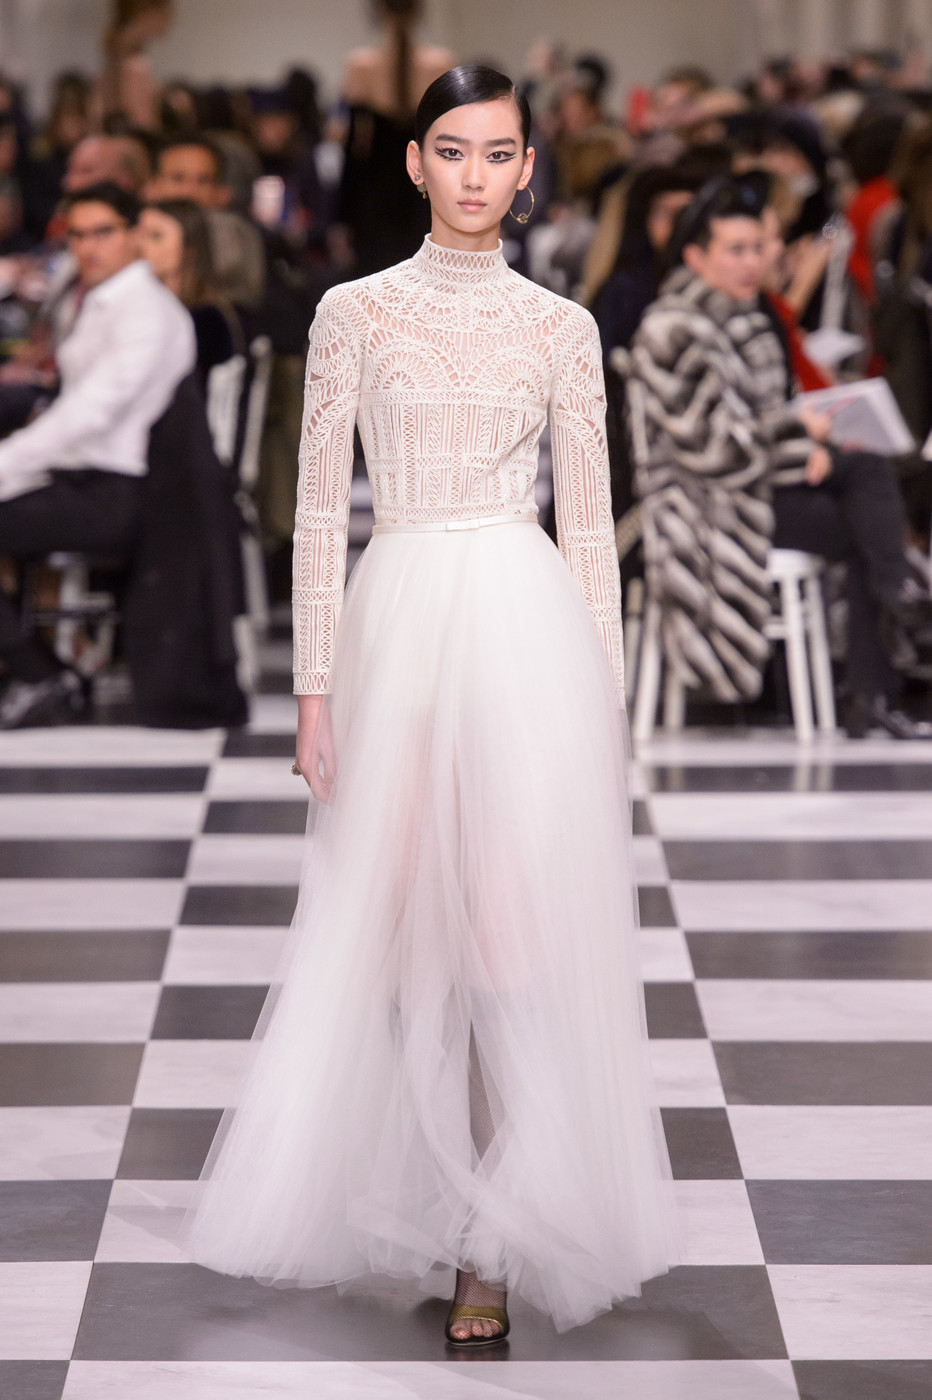 Christian Dior Couture Spring 2018 - Wedding-Worthy ...